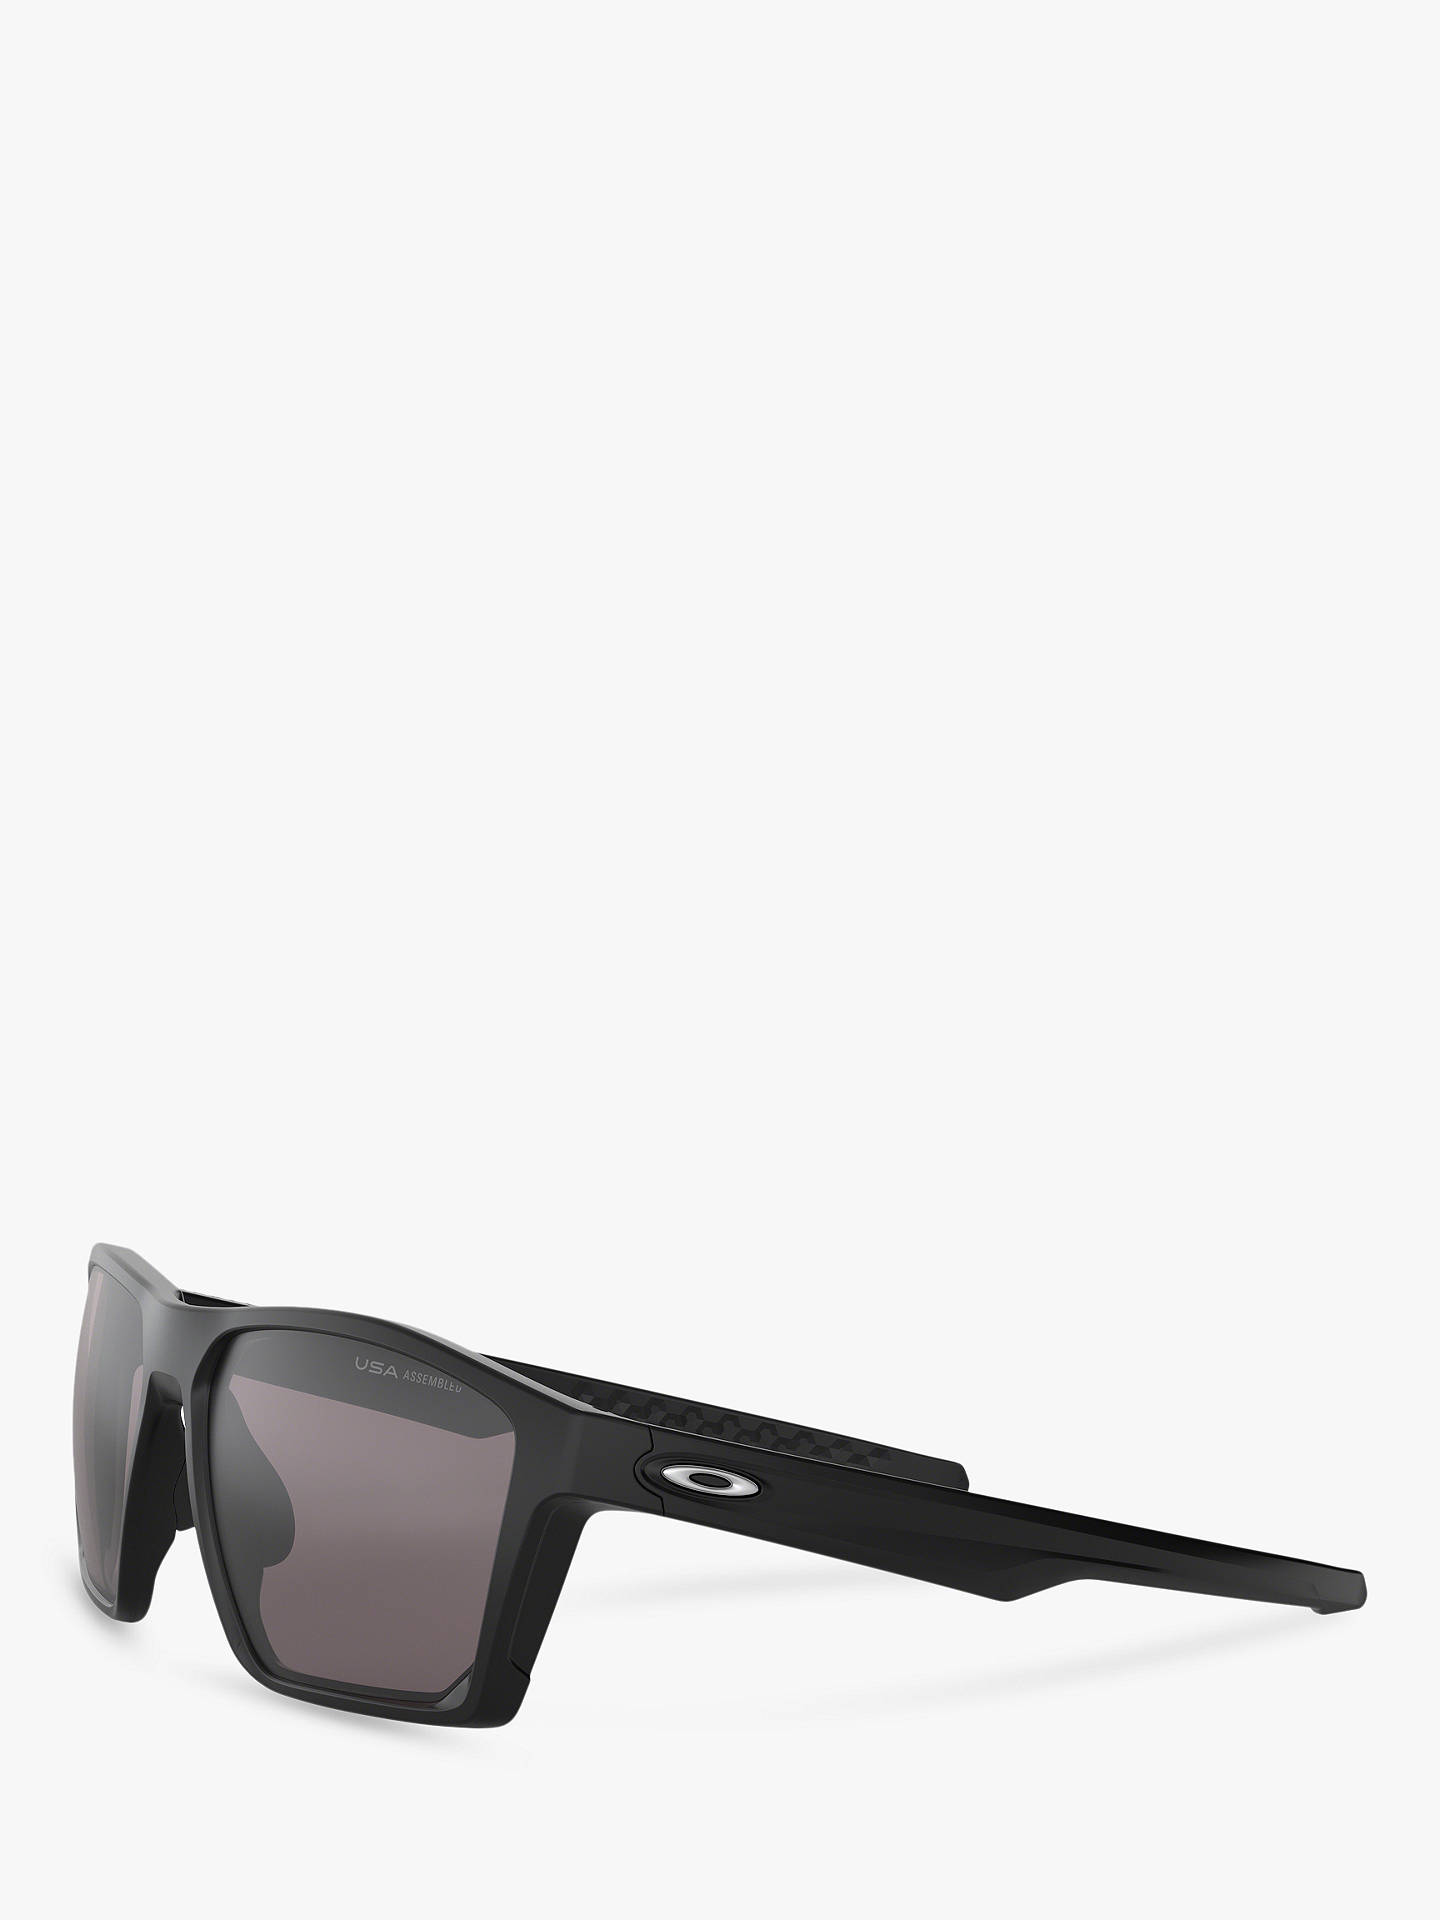 cff19397a49 Oakley OO9397 Men s Targetline Prizm Square Sunglasses at John Lewis ...